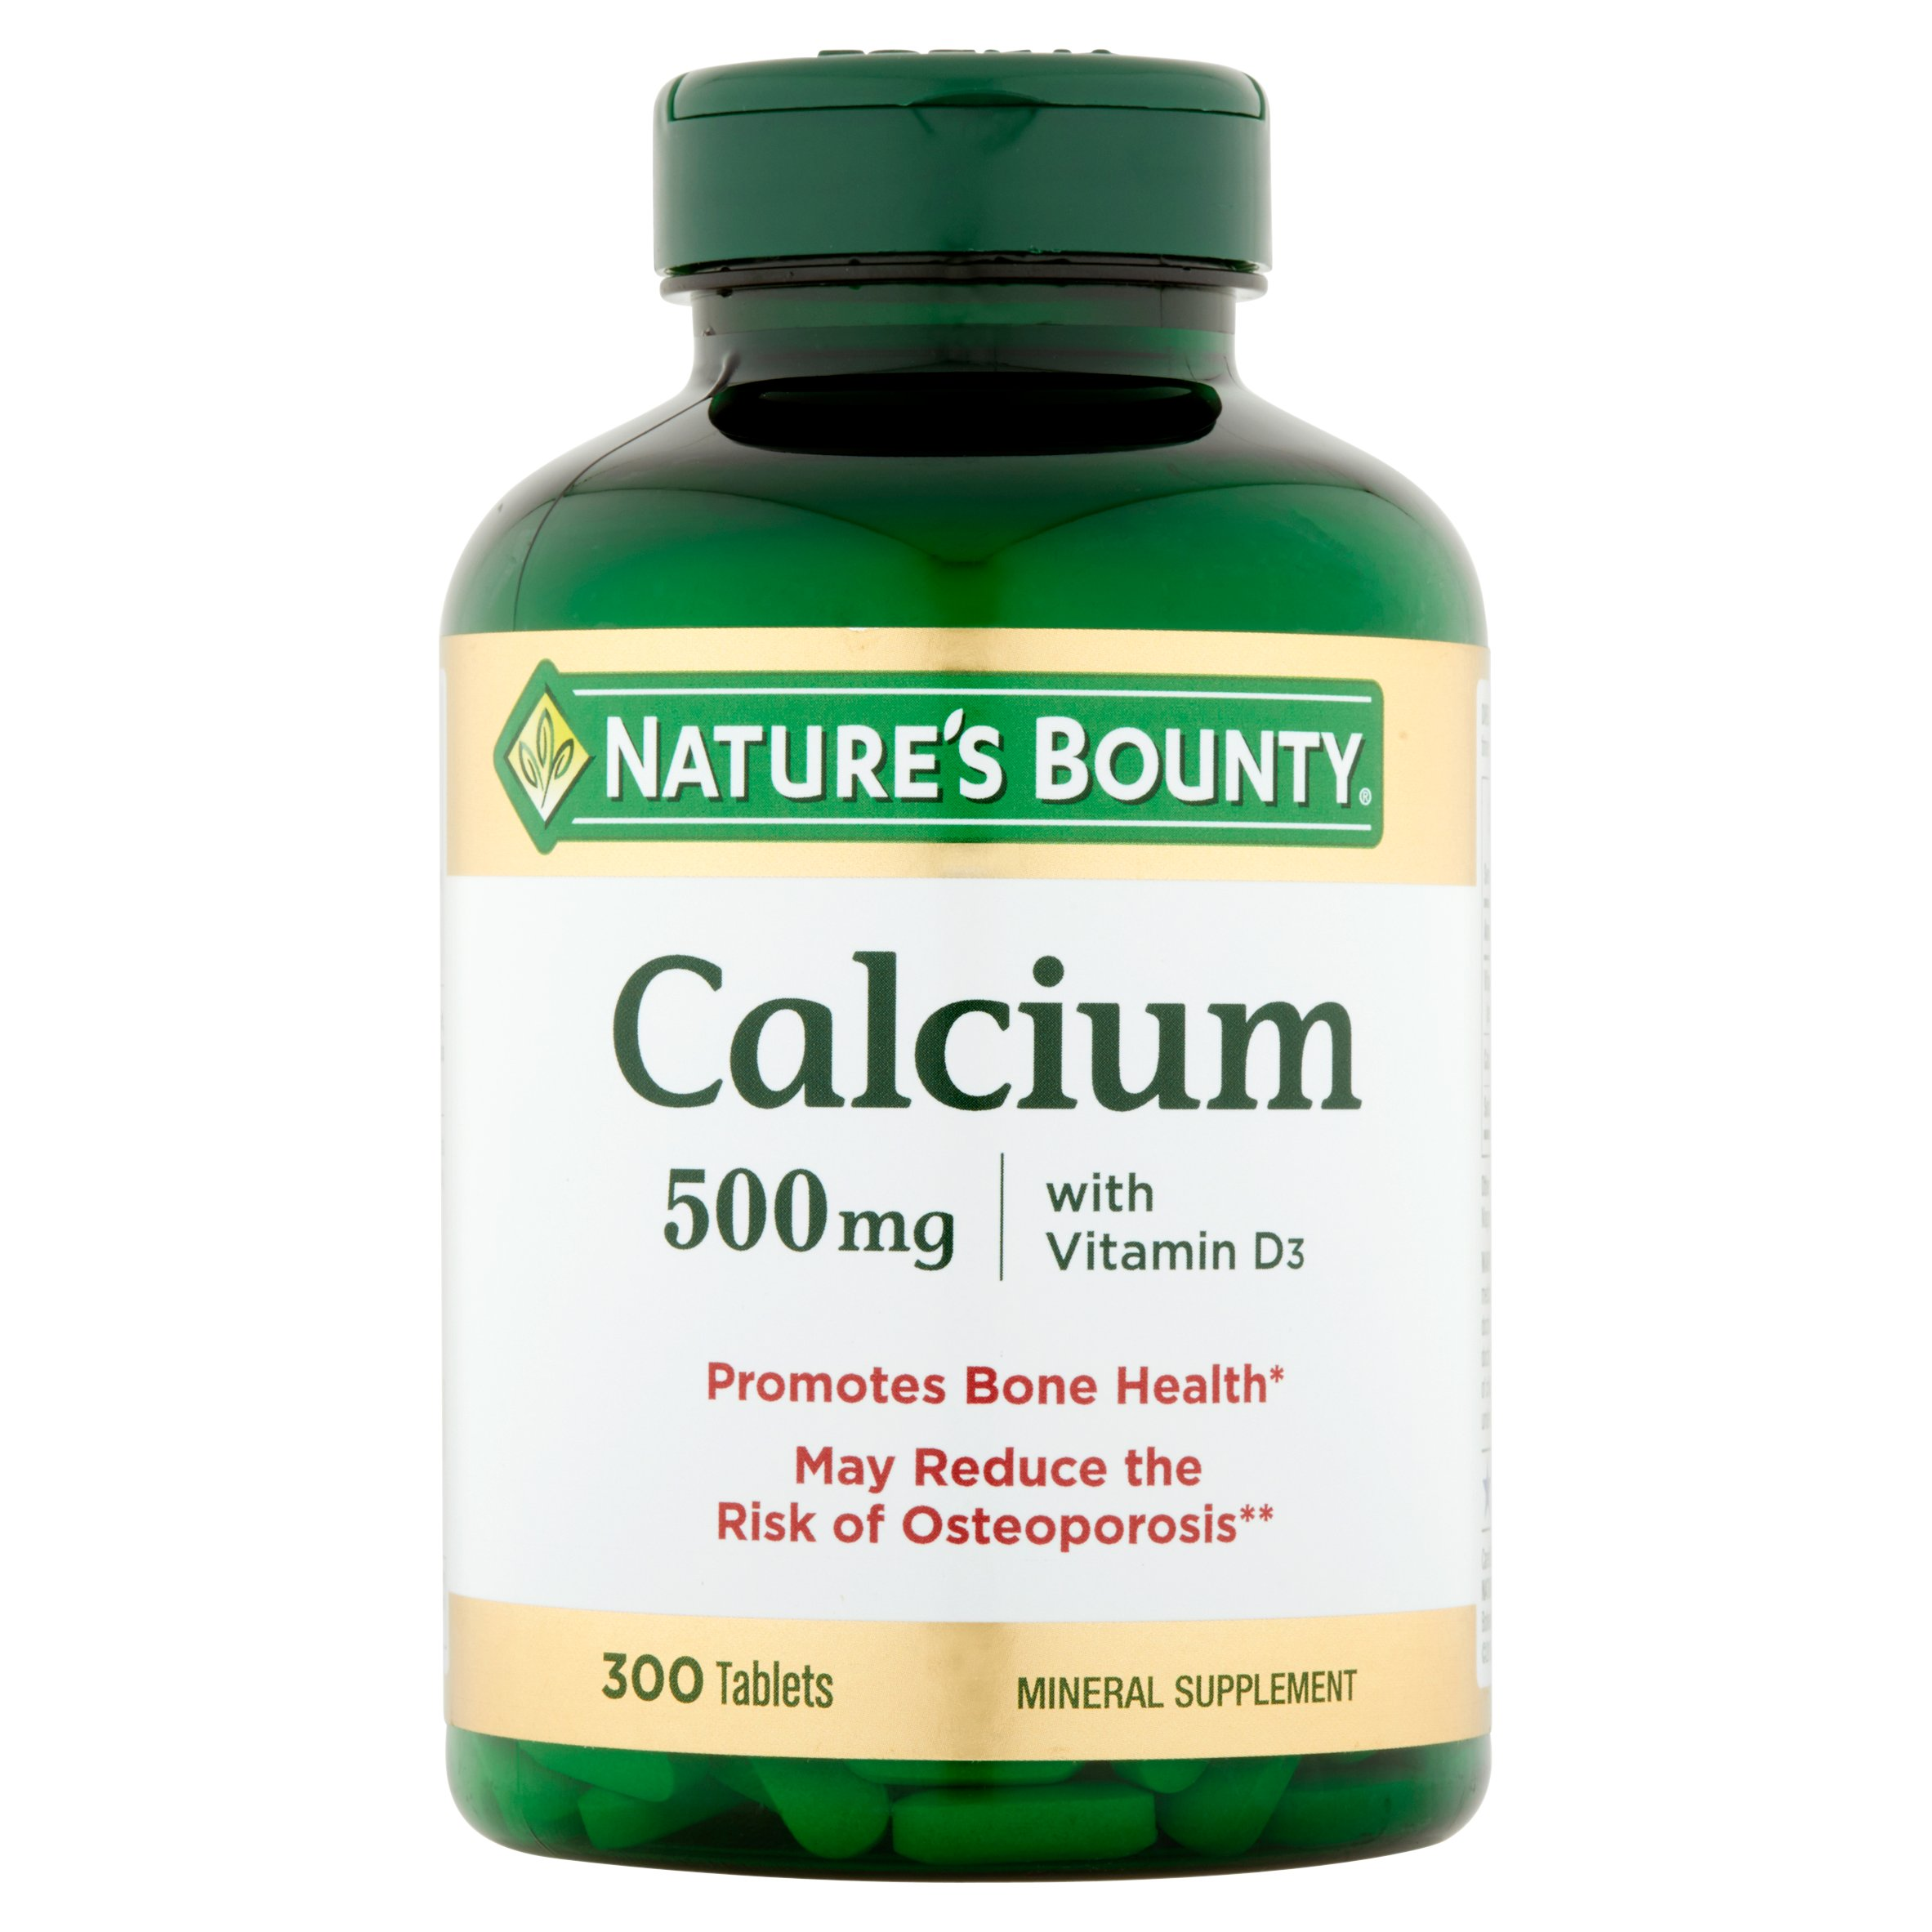 Nature's Bounty Calcium with Vitamin D3, 500 mg, 300 Tablets